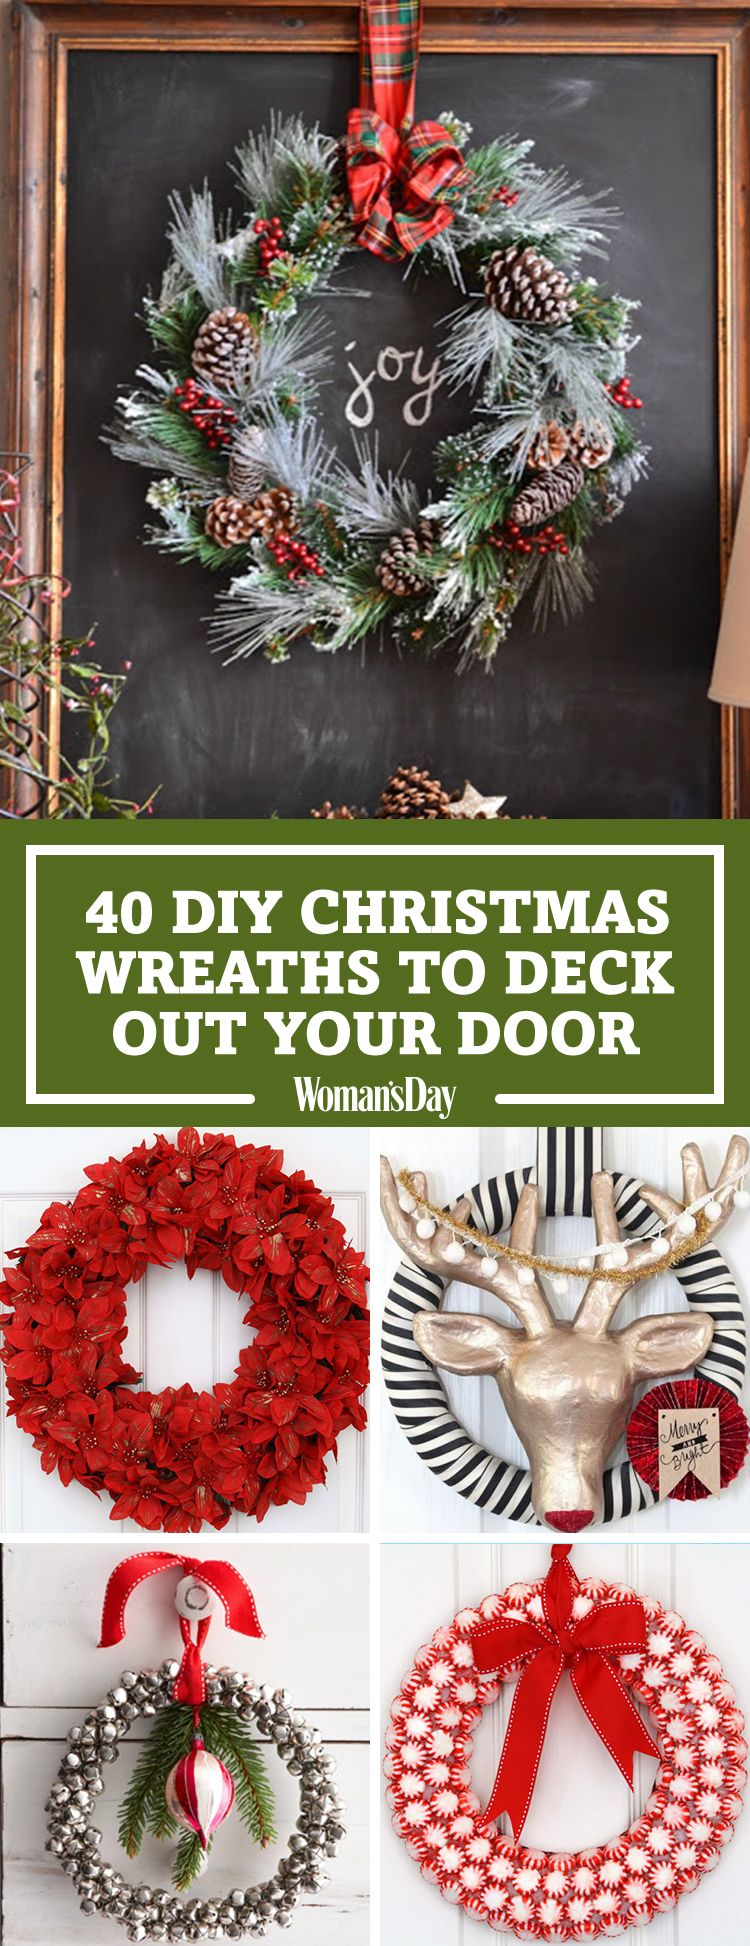 45 diy christmas wreath ideas how to make a homemade holiday wreath womansdaycom